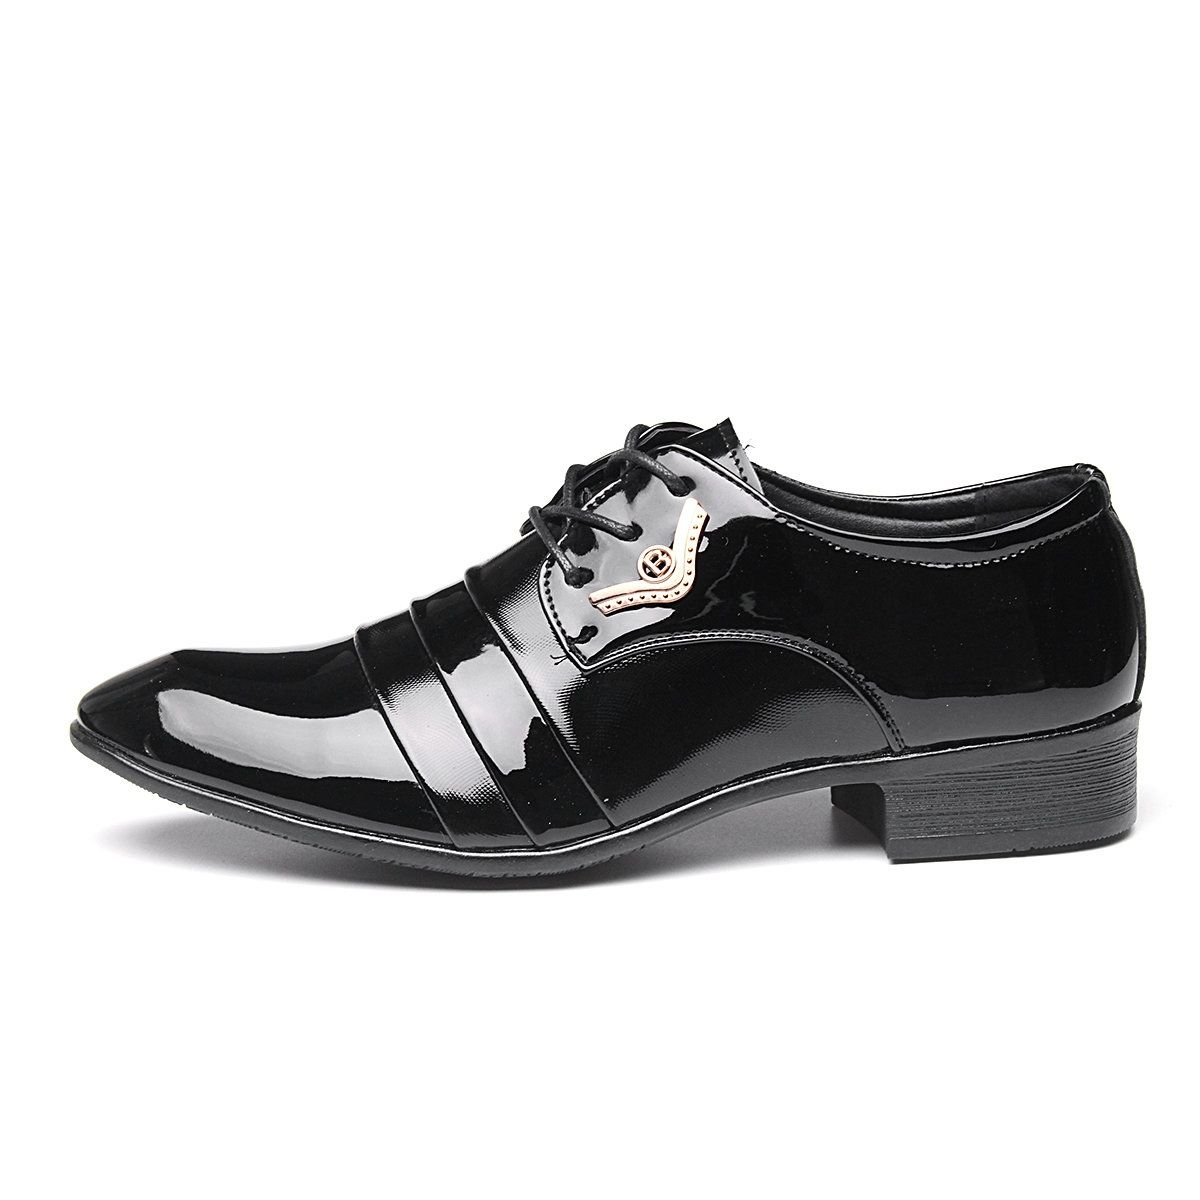 Mens Formal Dress British faux Patent Leather business Pointed Toe Wedding Shoes